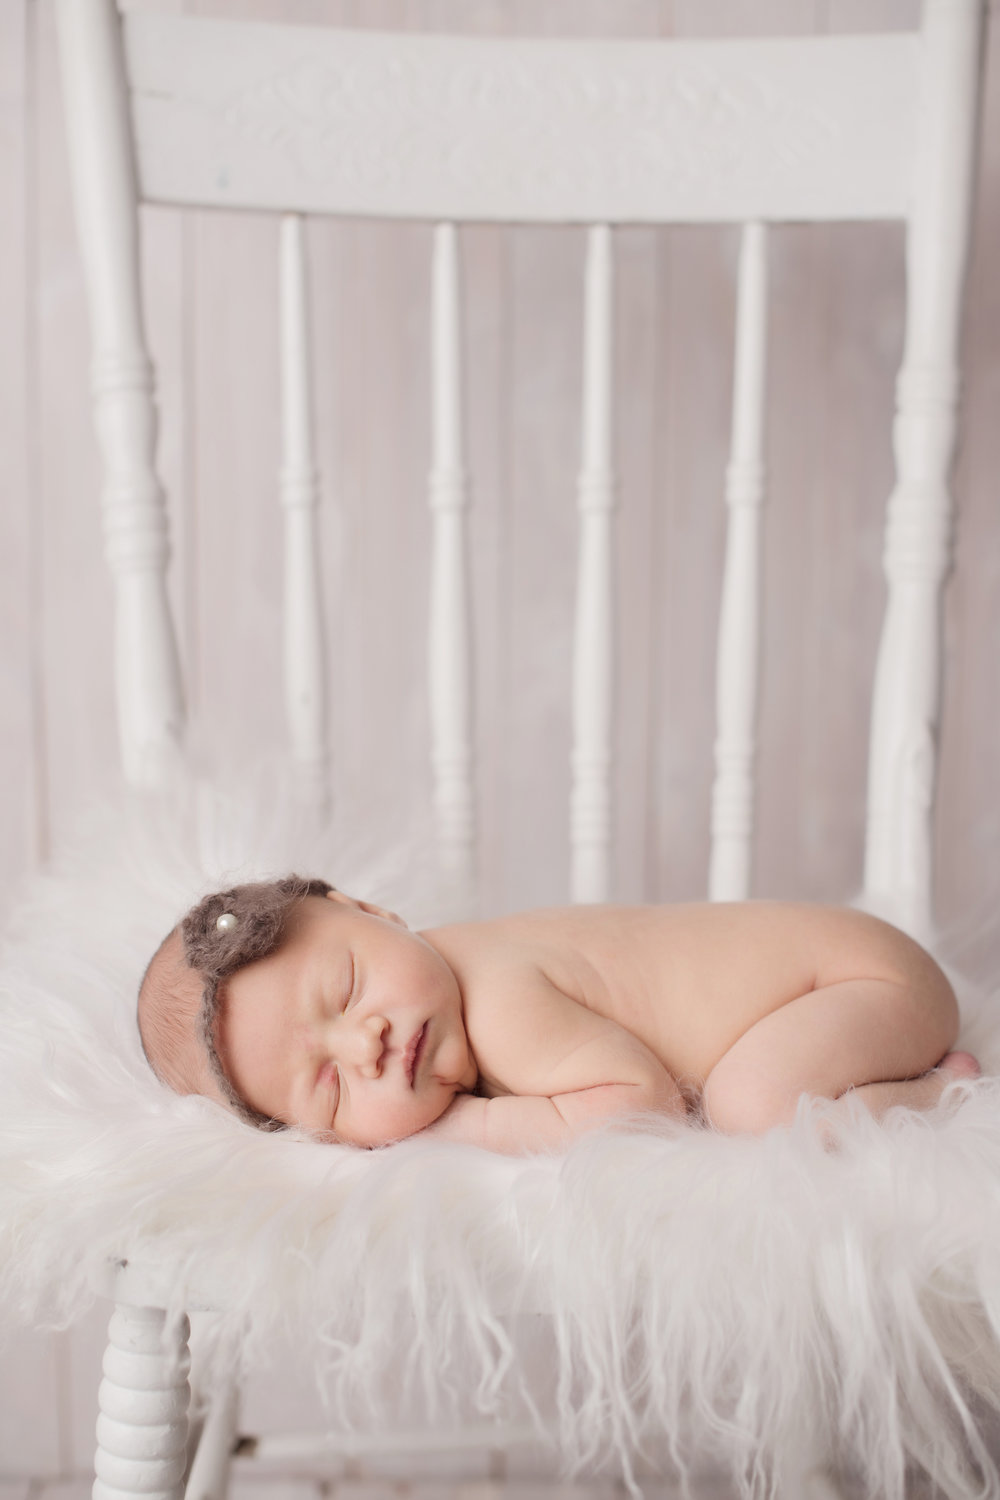 Baby-Photographer-Newborn-Photography-Bozeman-Billings-Montana-Tina-Stinson-Photography-2447.jpg